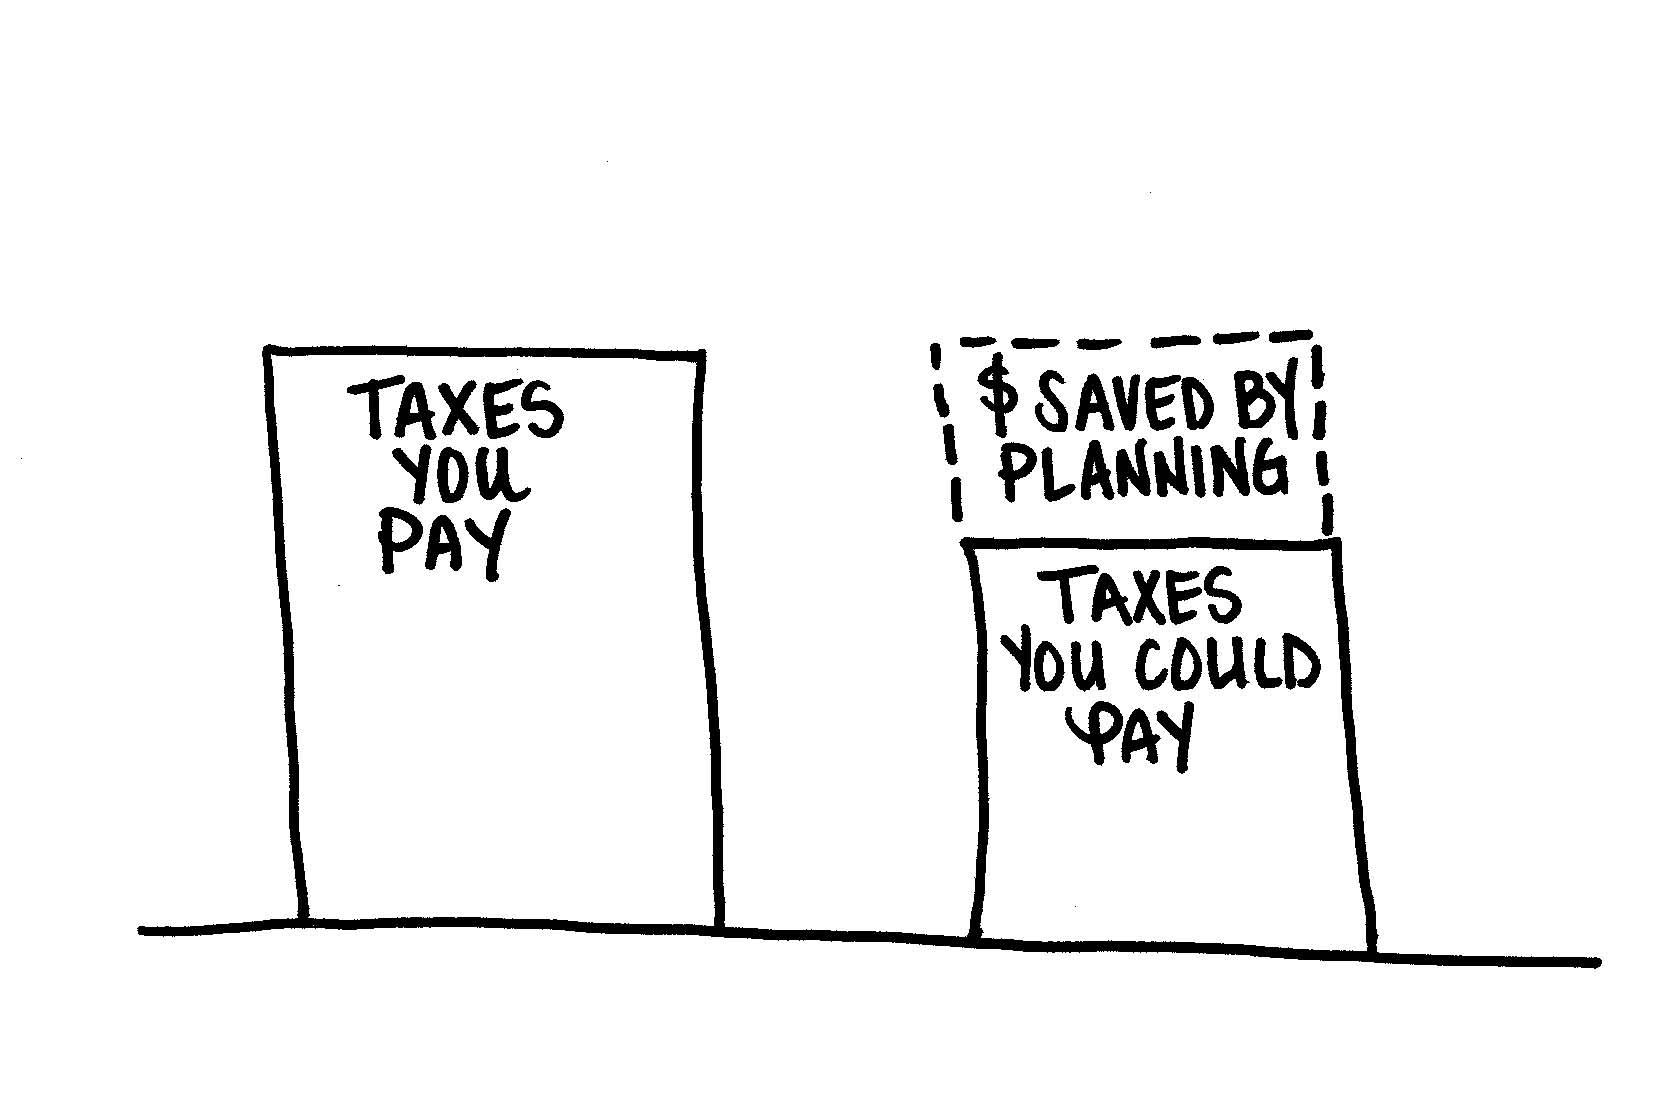 5 Ways To Reduce Your Income Tax